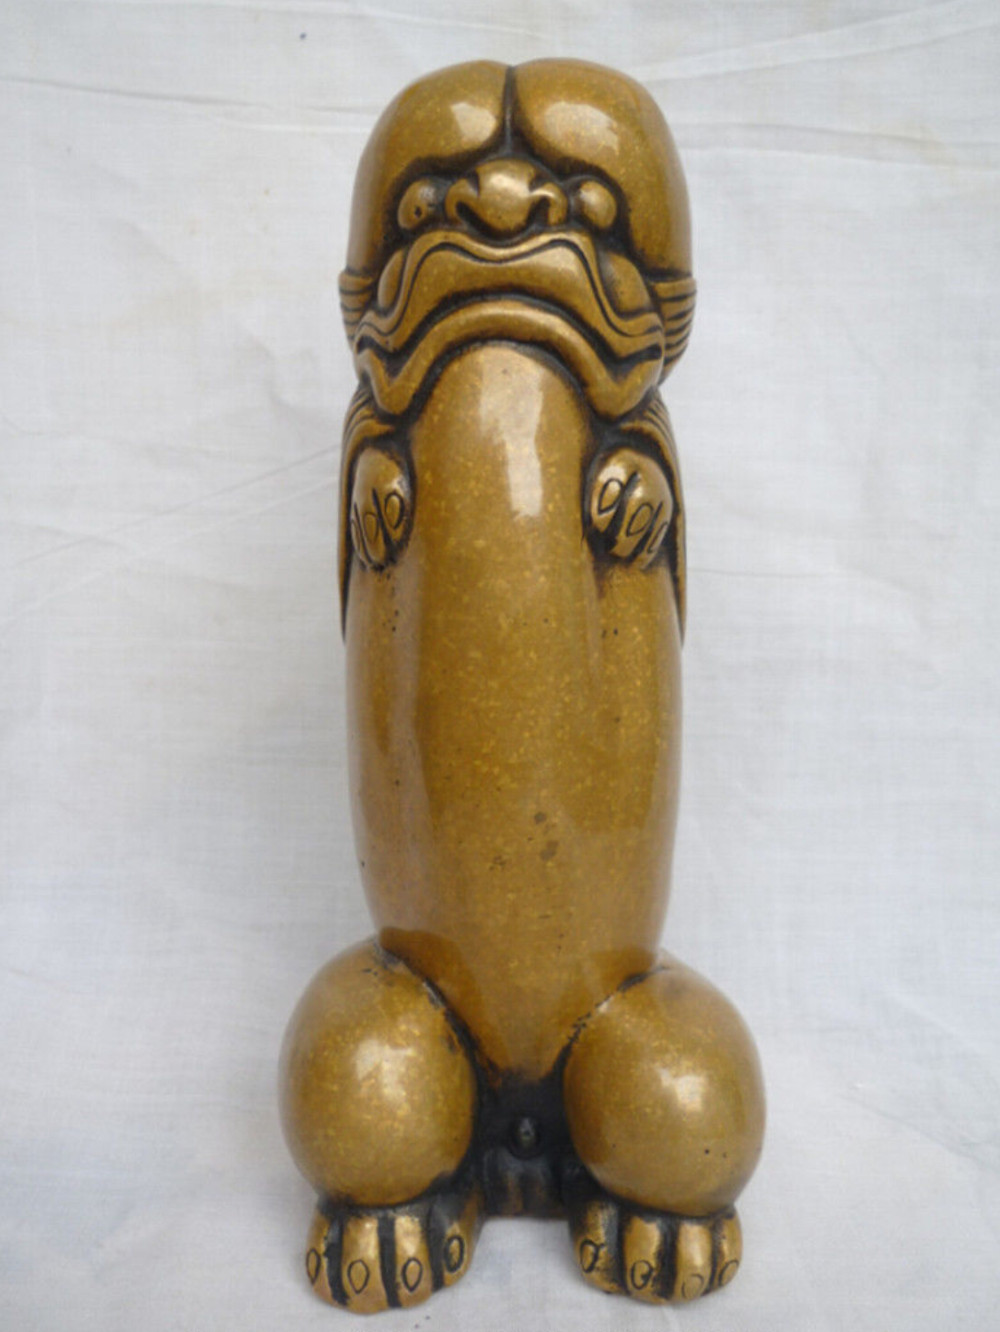 MOEHOMES Chinese old copper bronze penis fengshui statue Family decoration gifts metal crafts